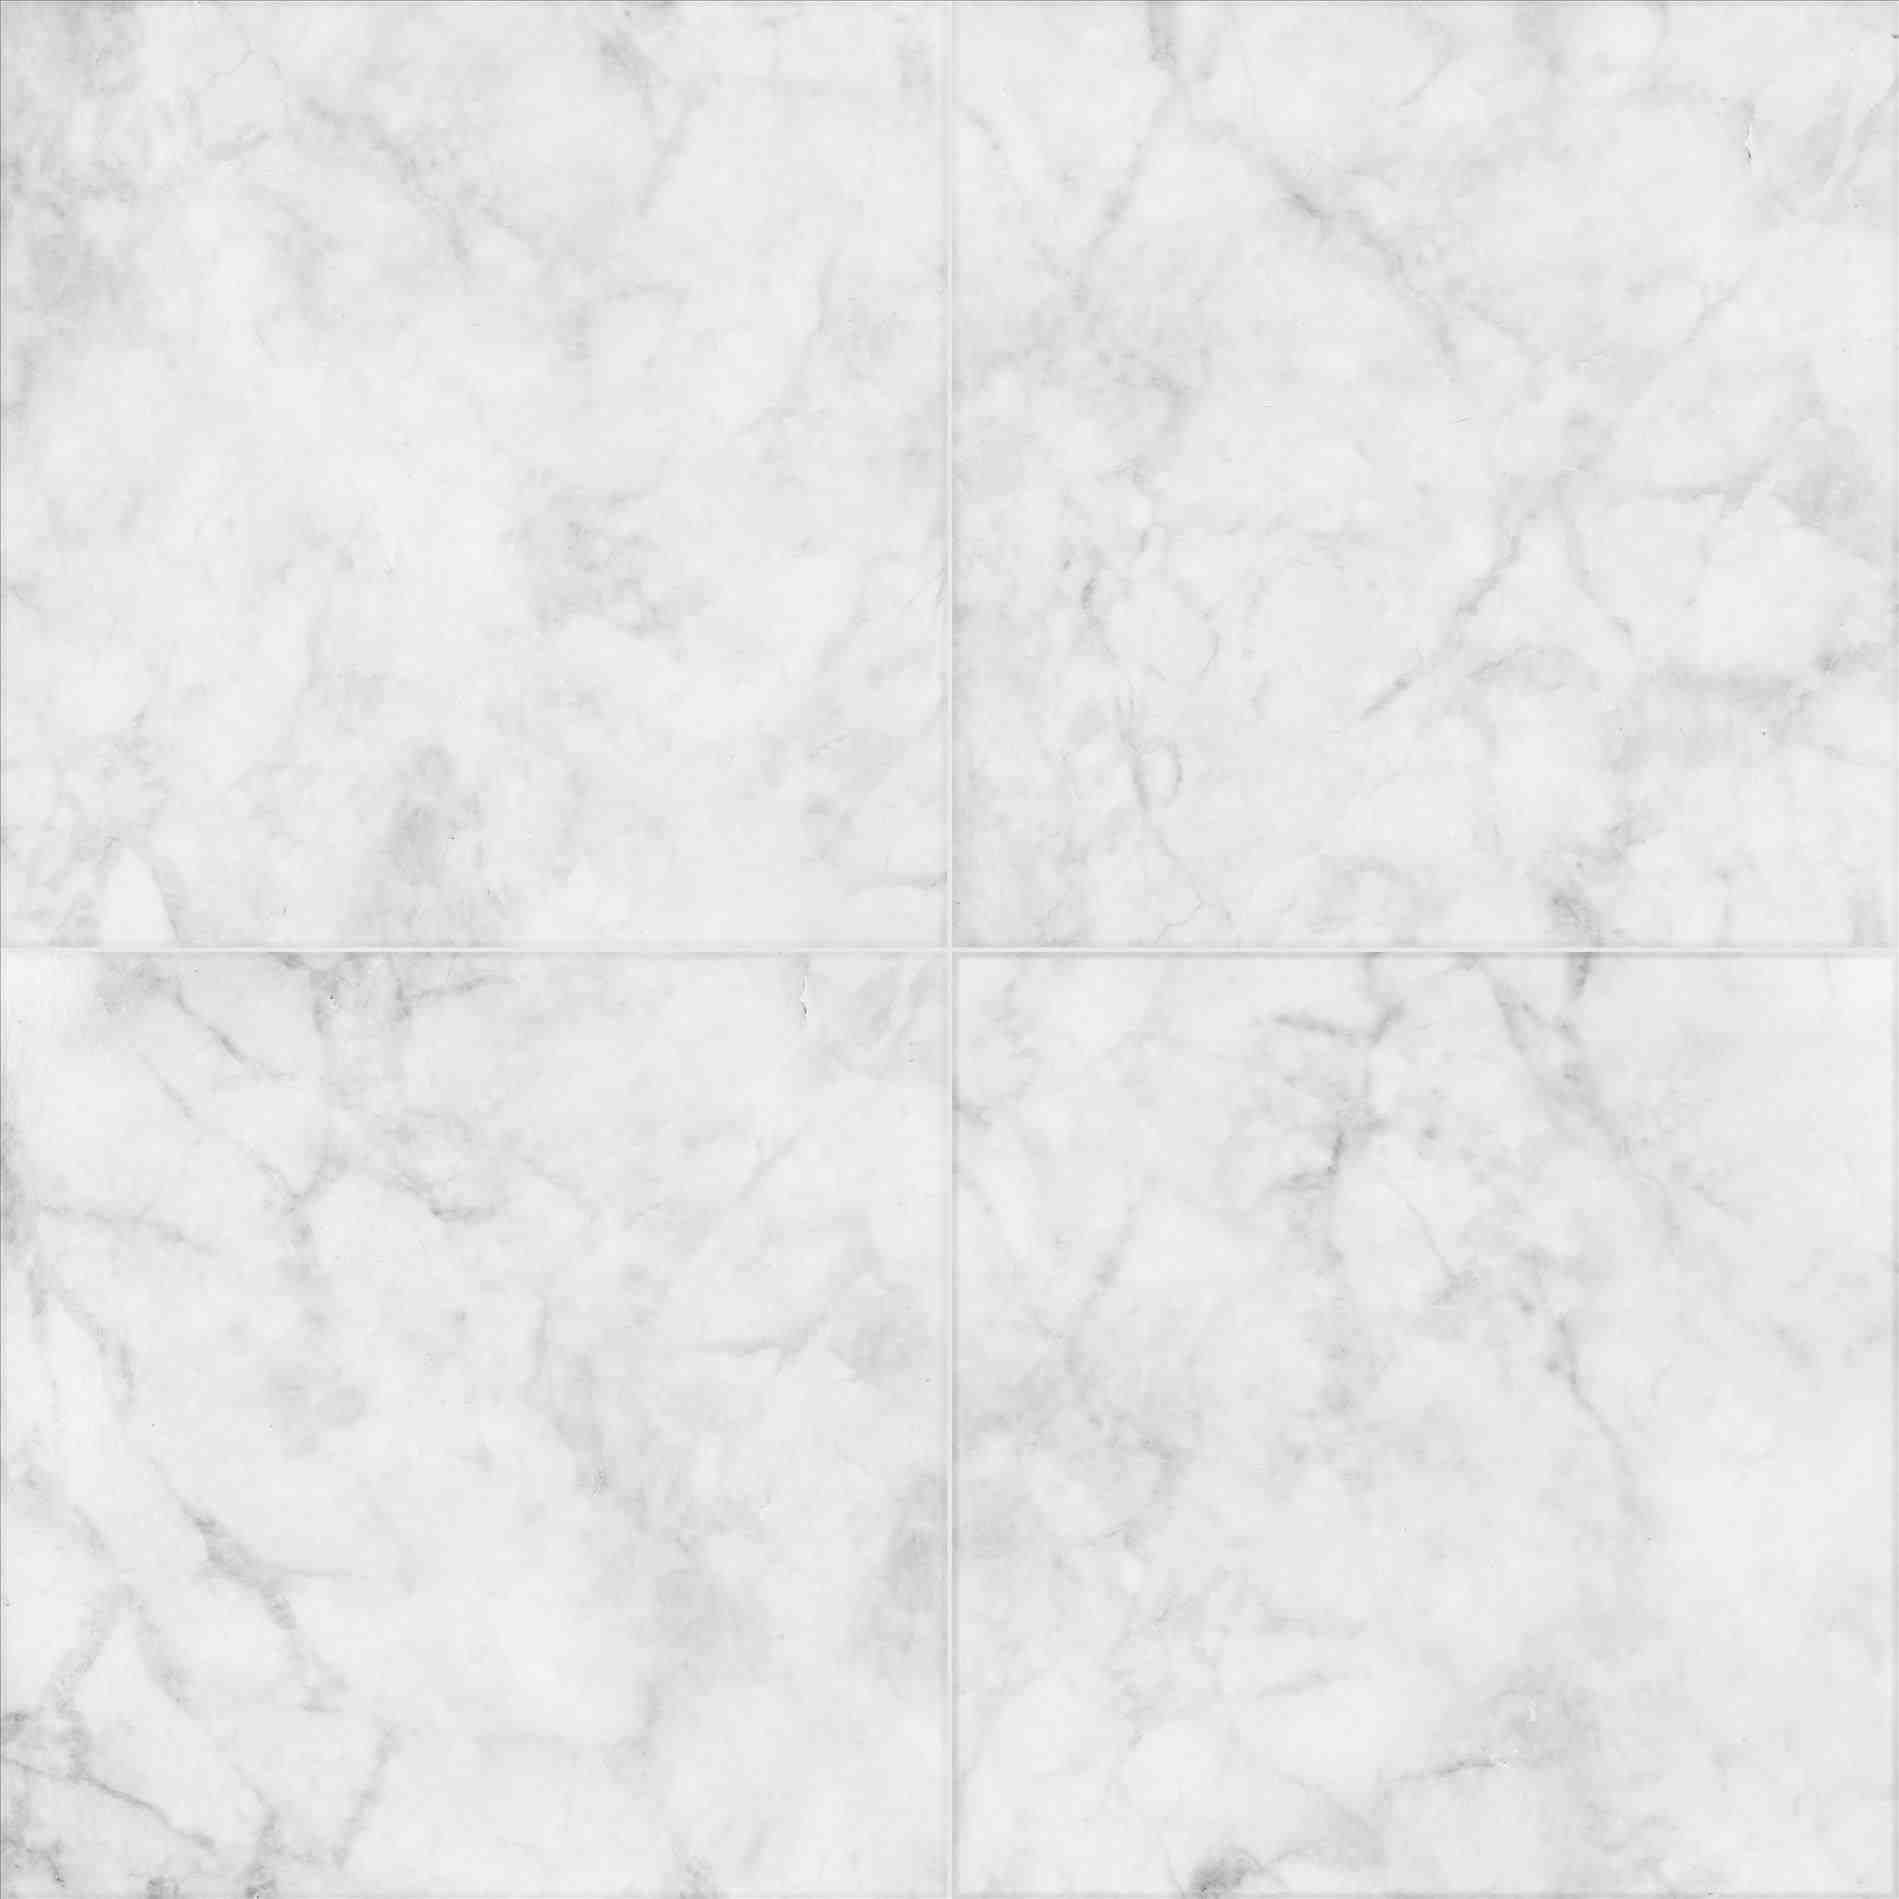 this bathroom floor tiles texture seamless with swirl pattern texture picture free contemporary white floor home contemporary white bathroom tiles texture - White Bathroom Tile Texture